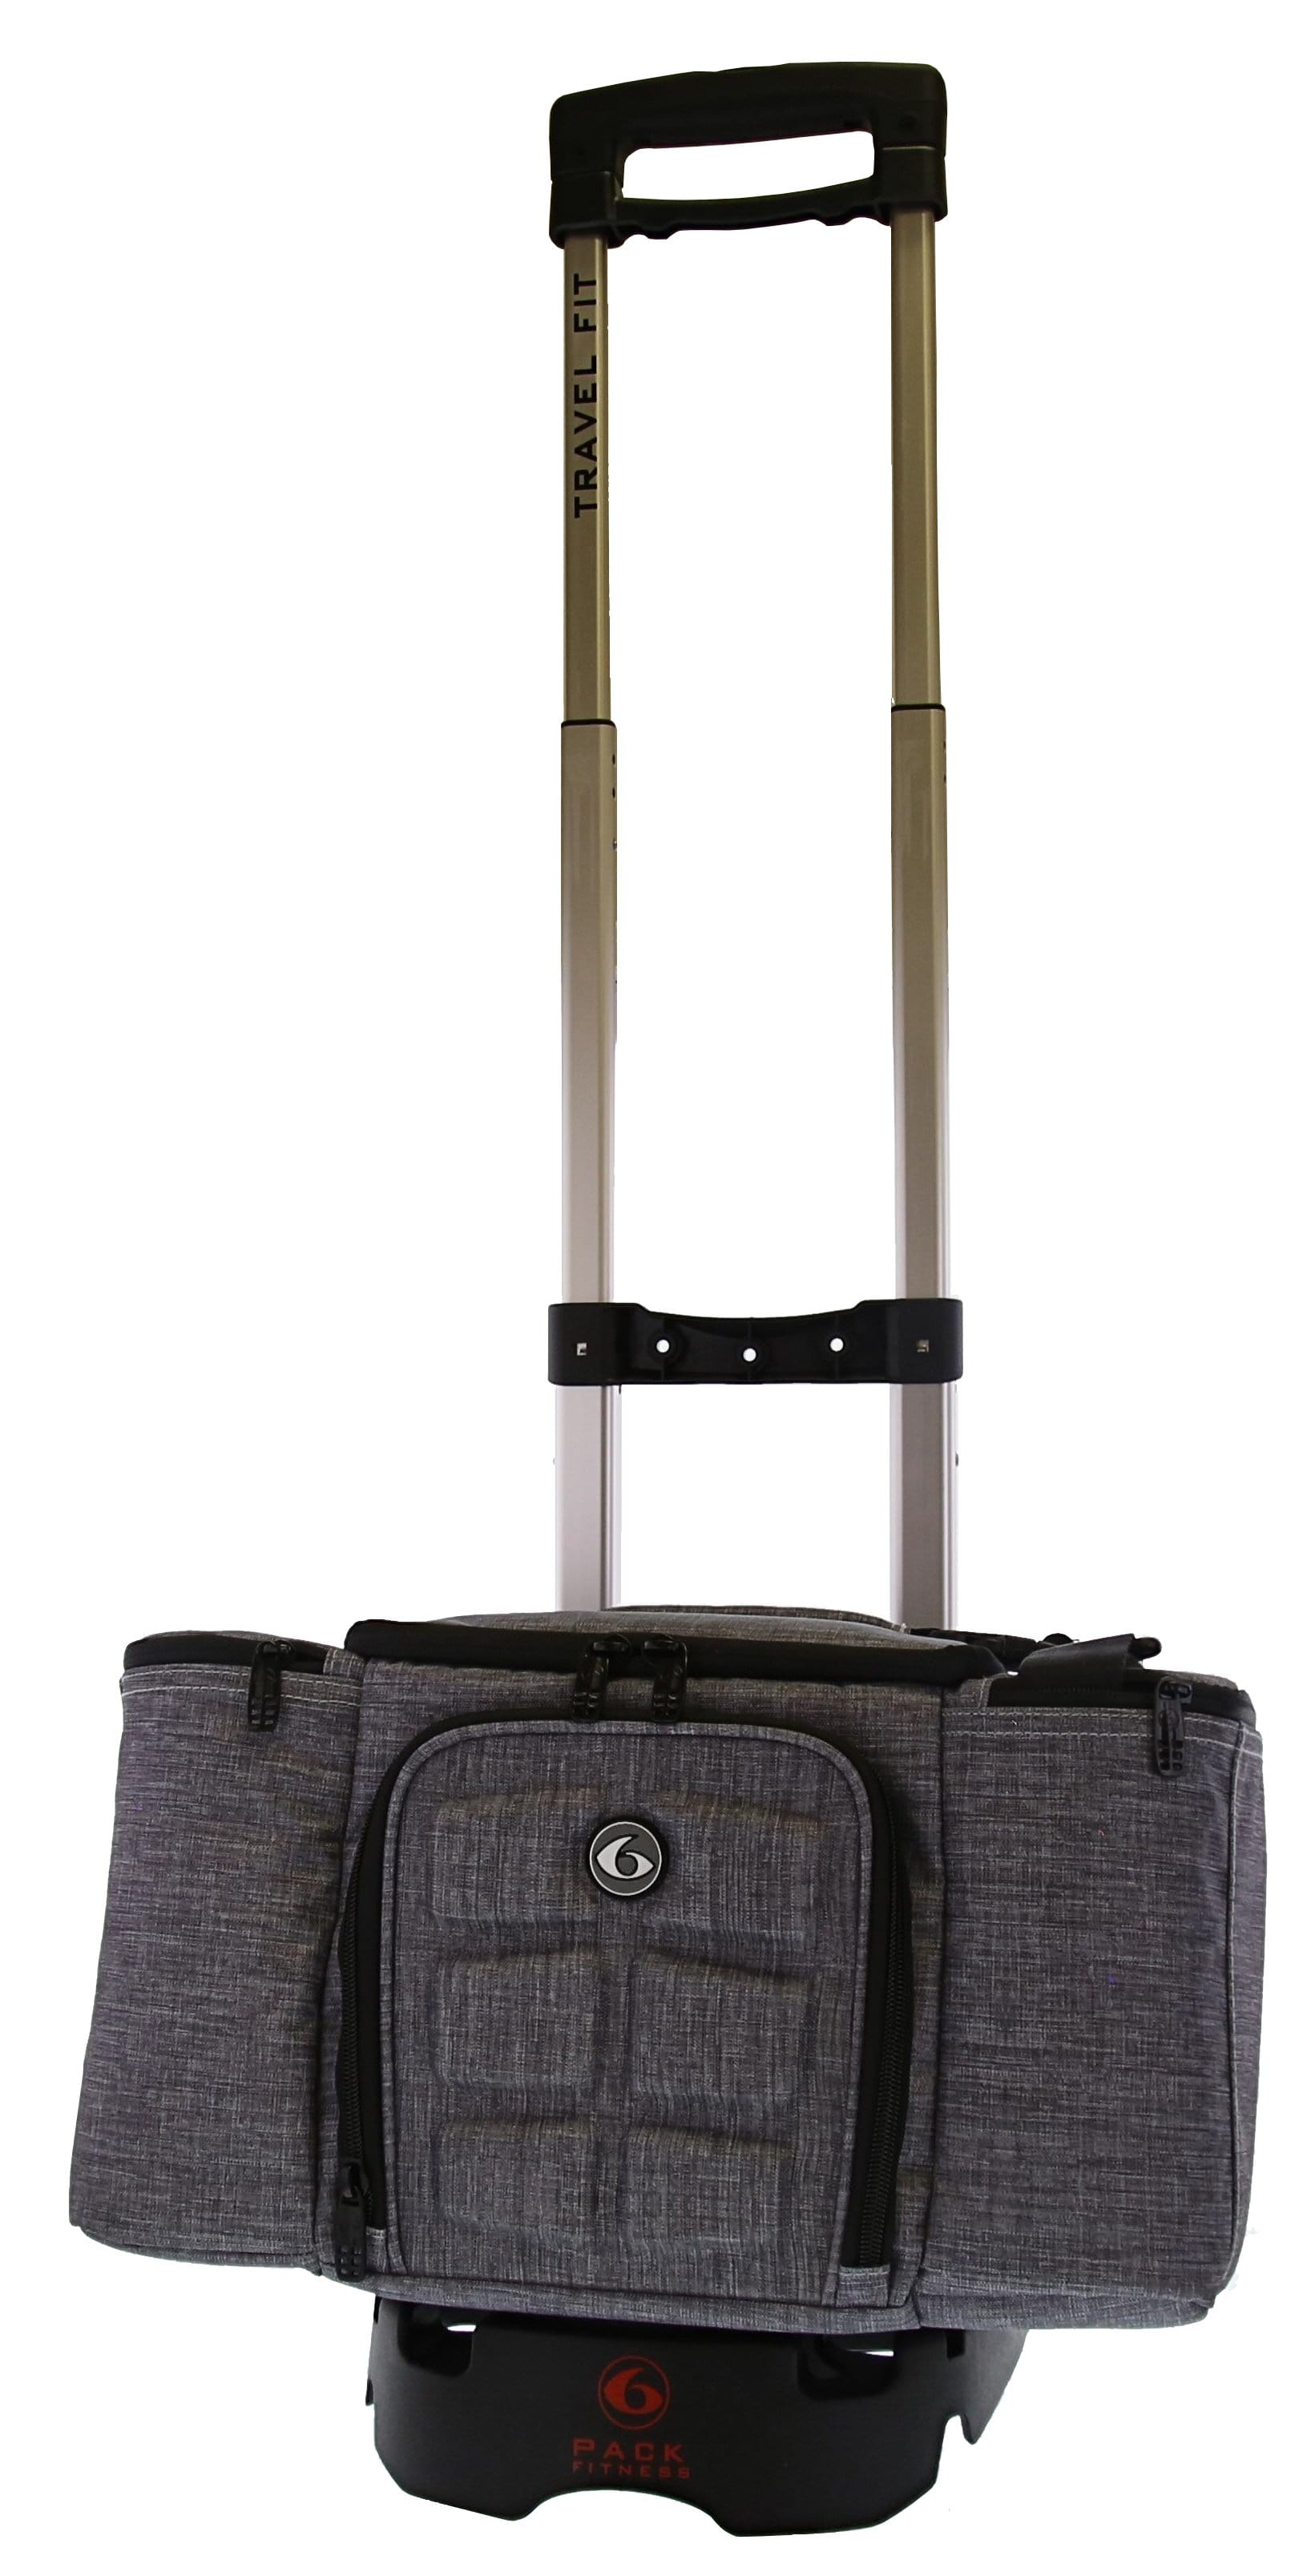 Trolley Bag and Luggage System - (Black/Silver)